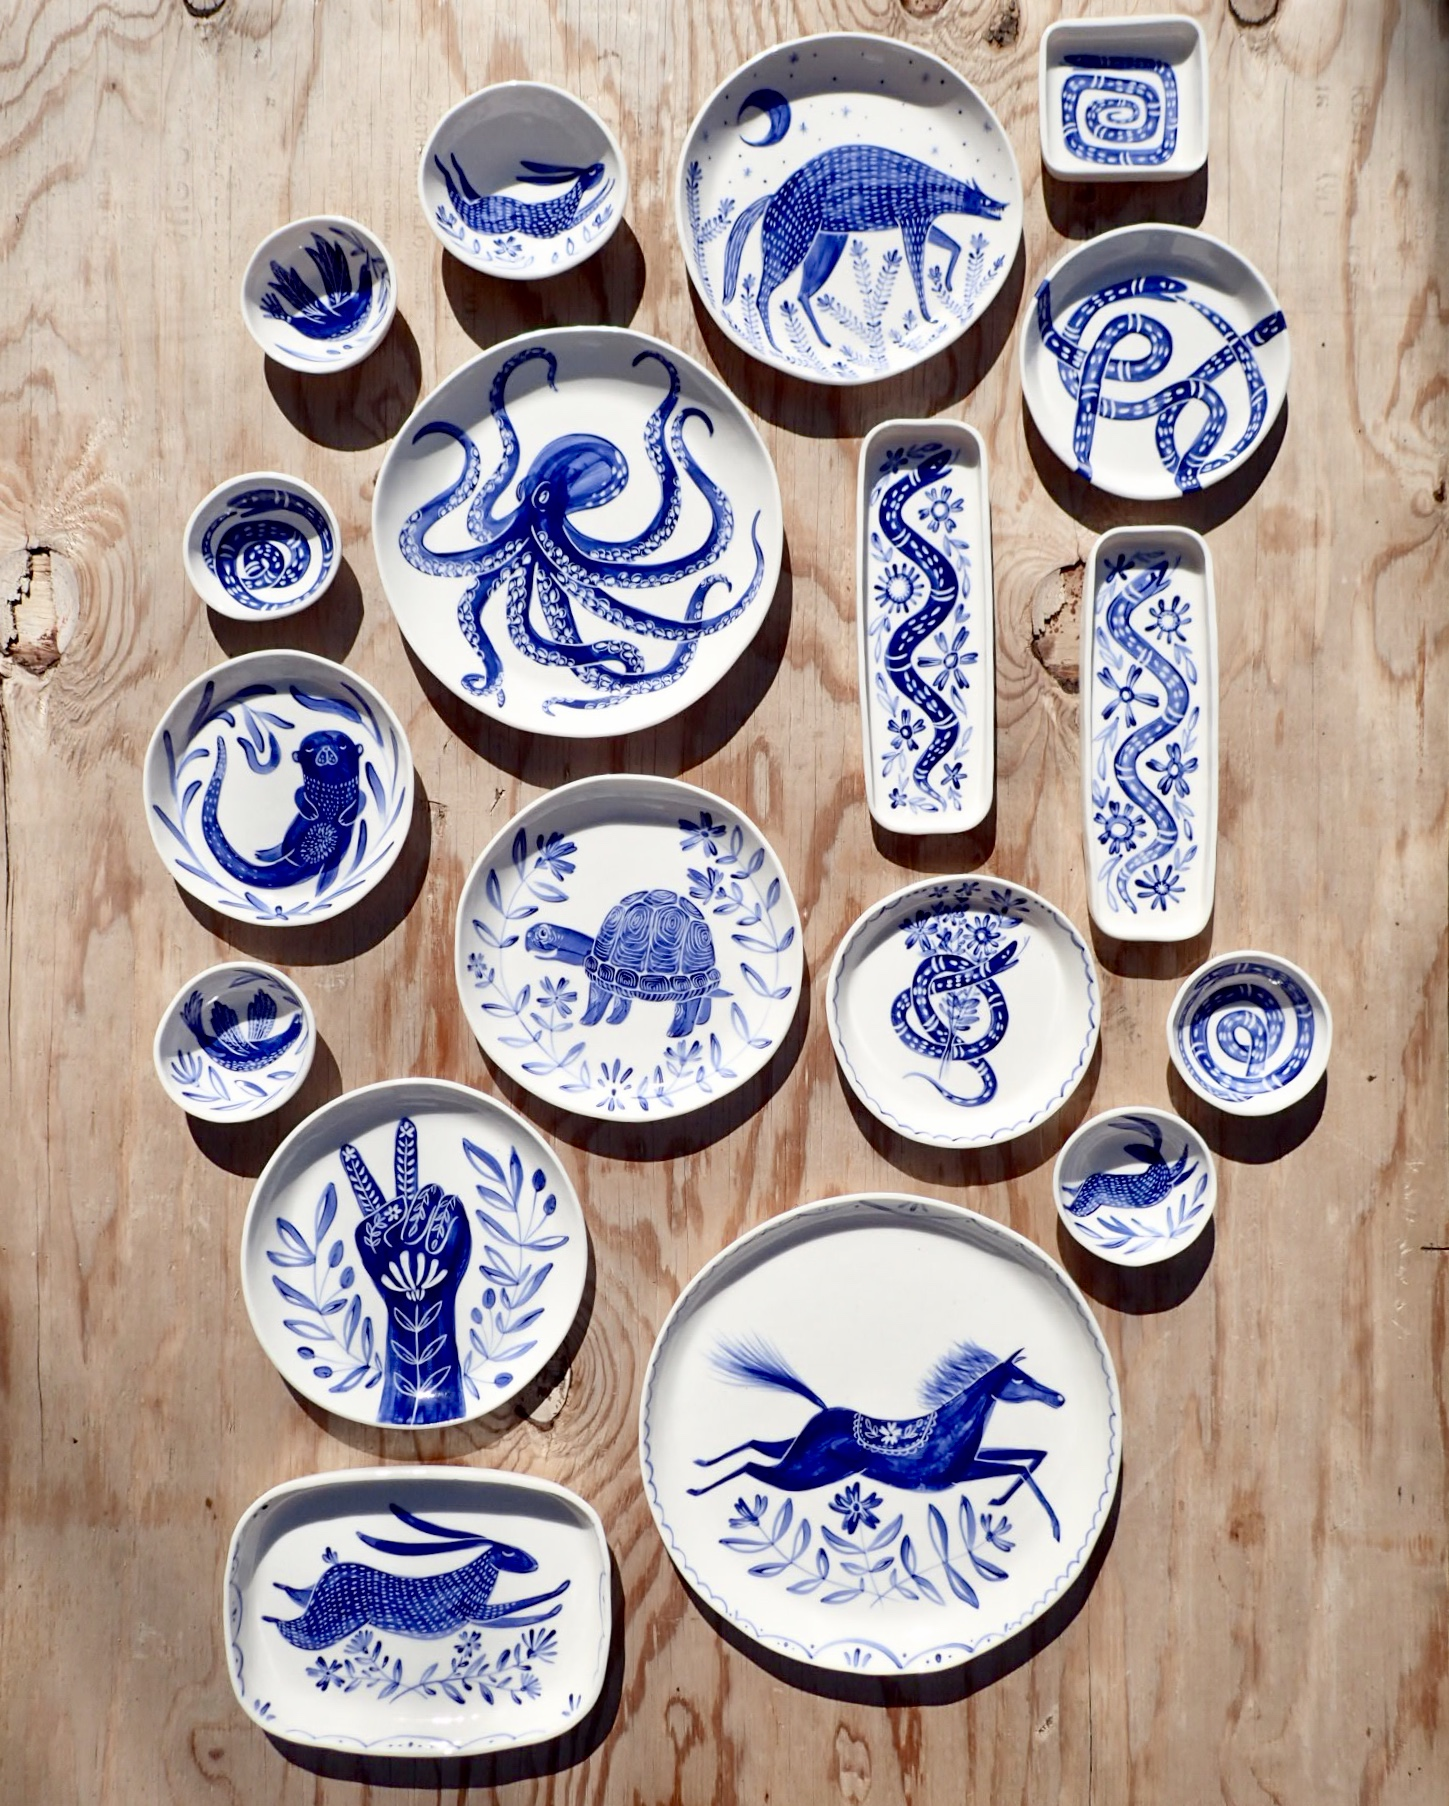 BeccaJaneStudio Becca Koehler Ceramics and Interview